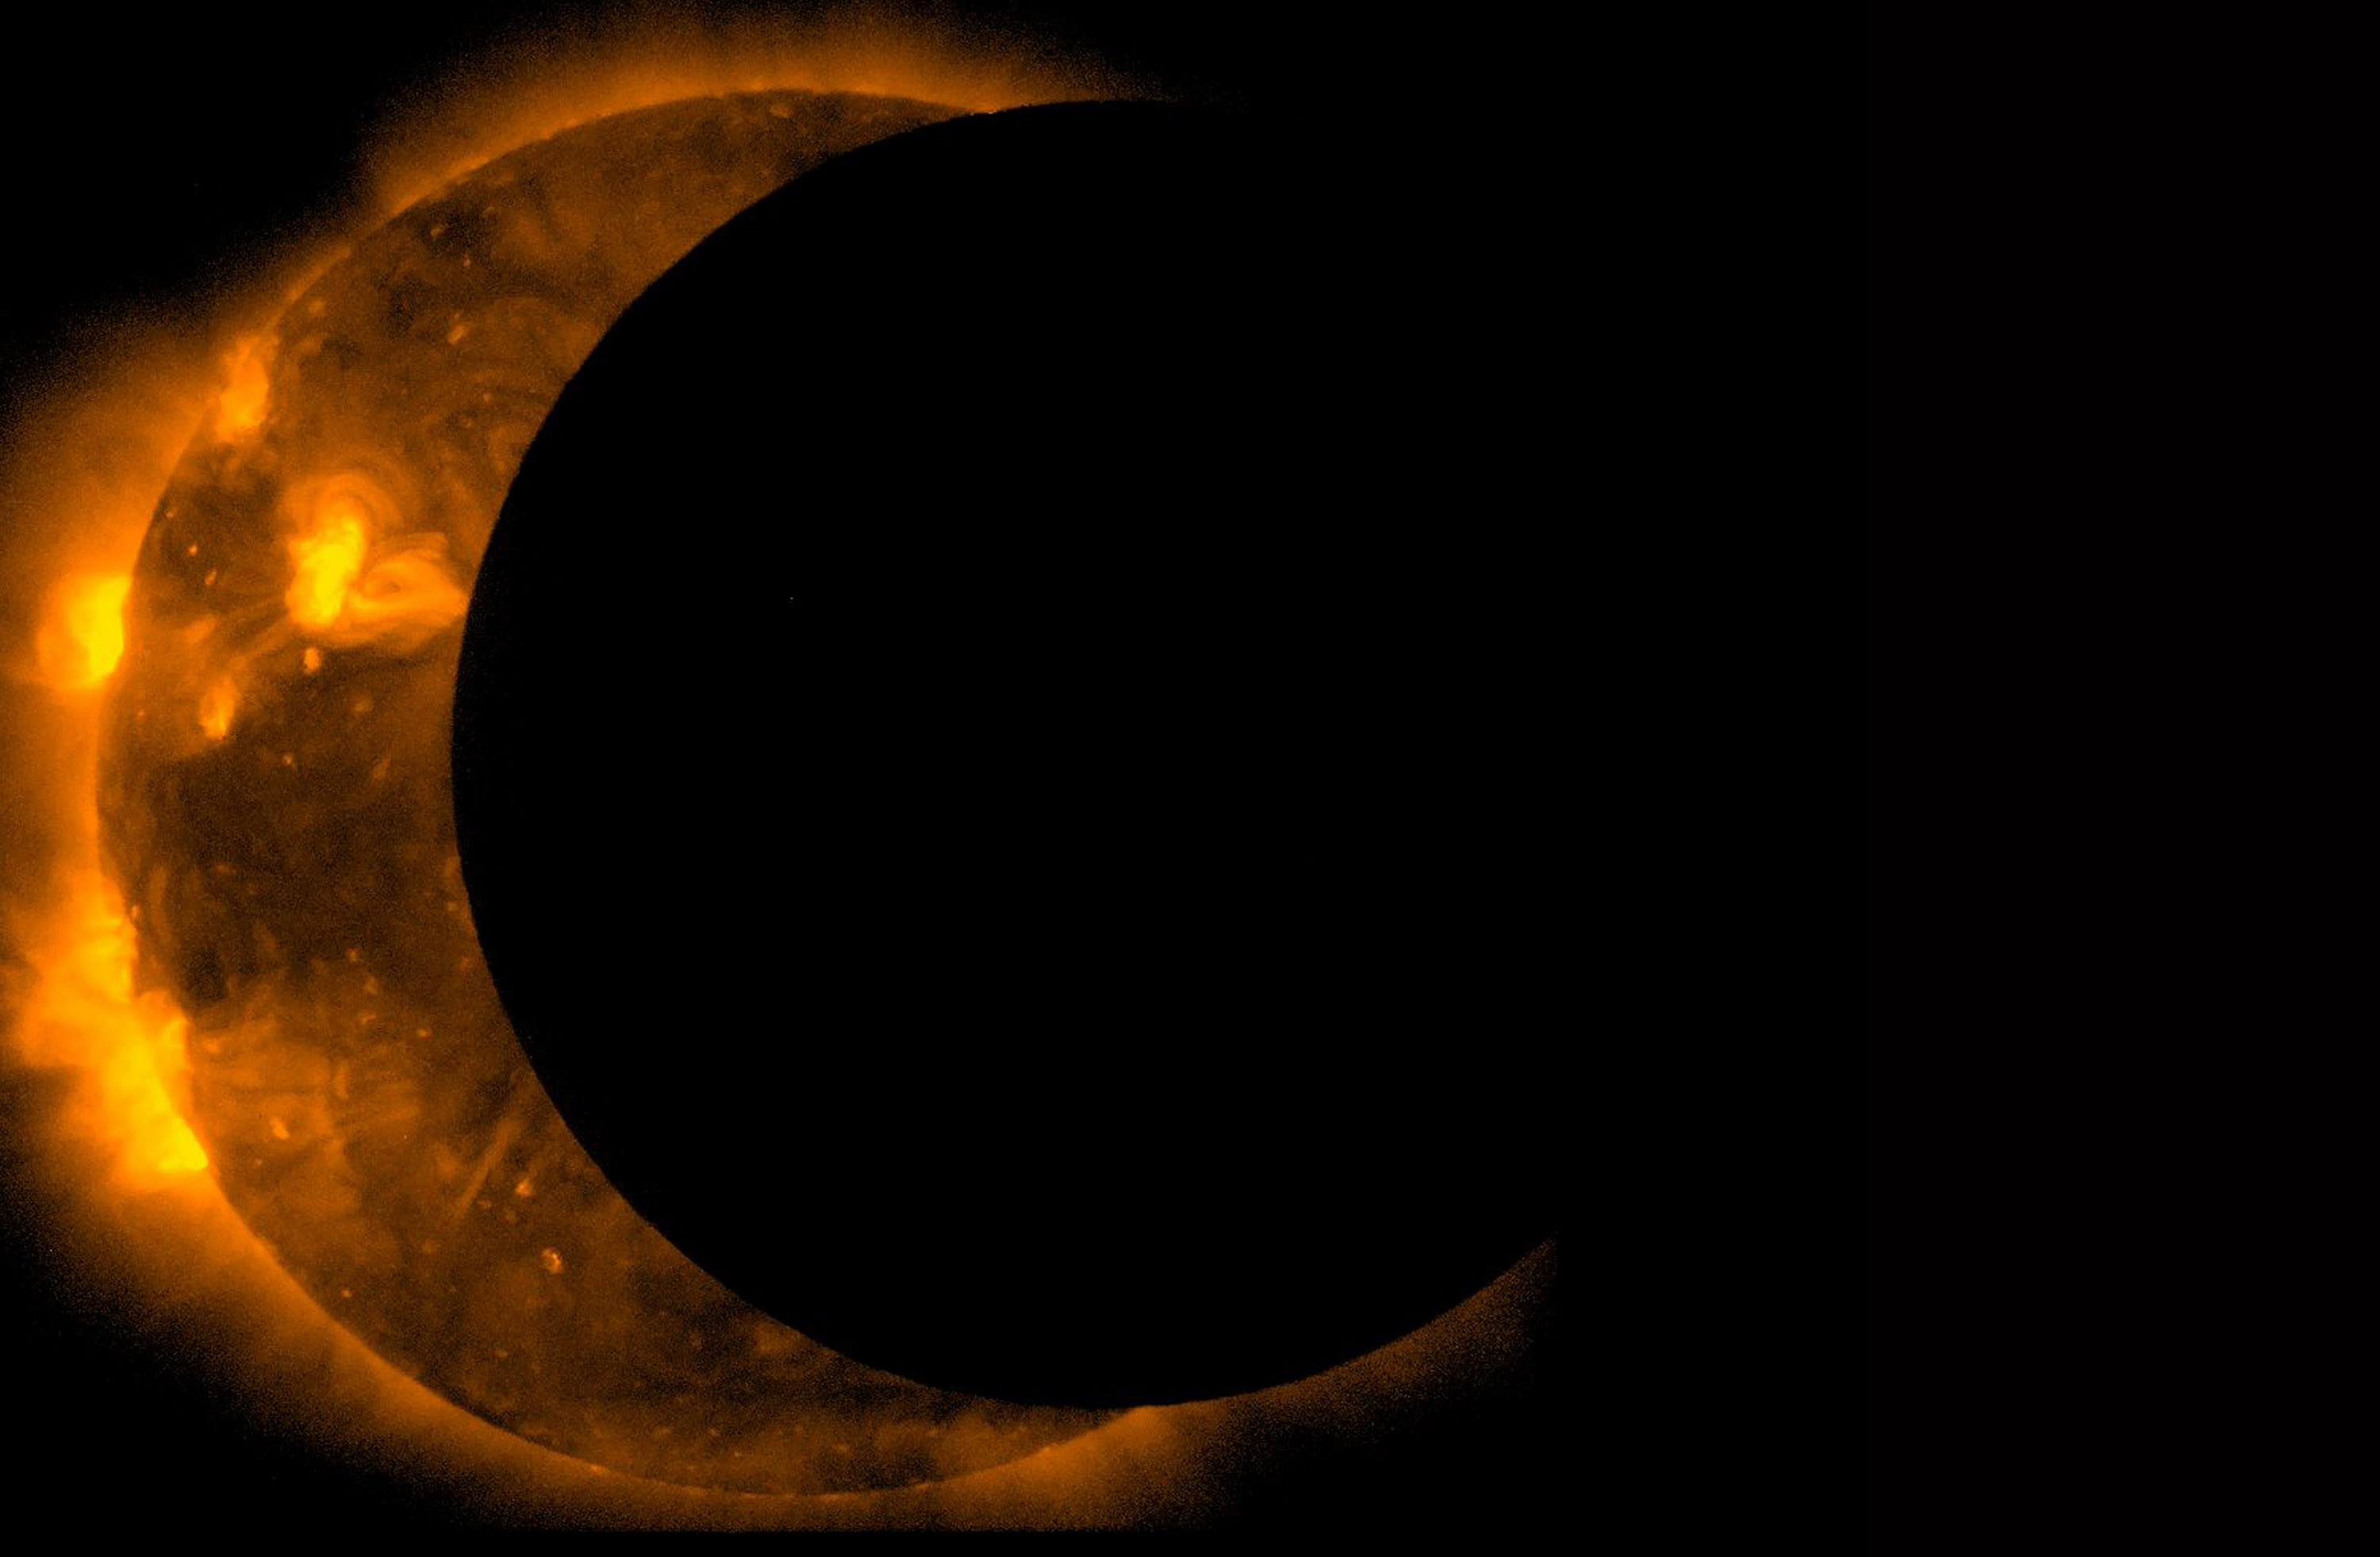 A partial solar eclipse is shown in this Sept. 13, 2015, image released by NASA. A total solar eclipse will occur over North America on Aug. 21. Photo courtesy of NASA.